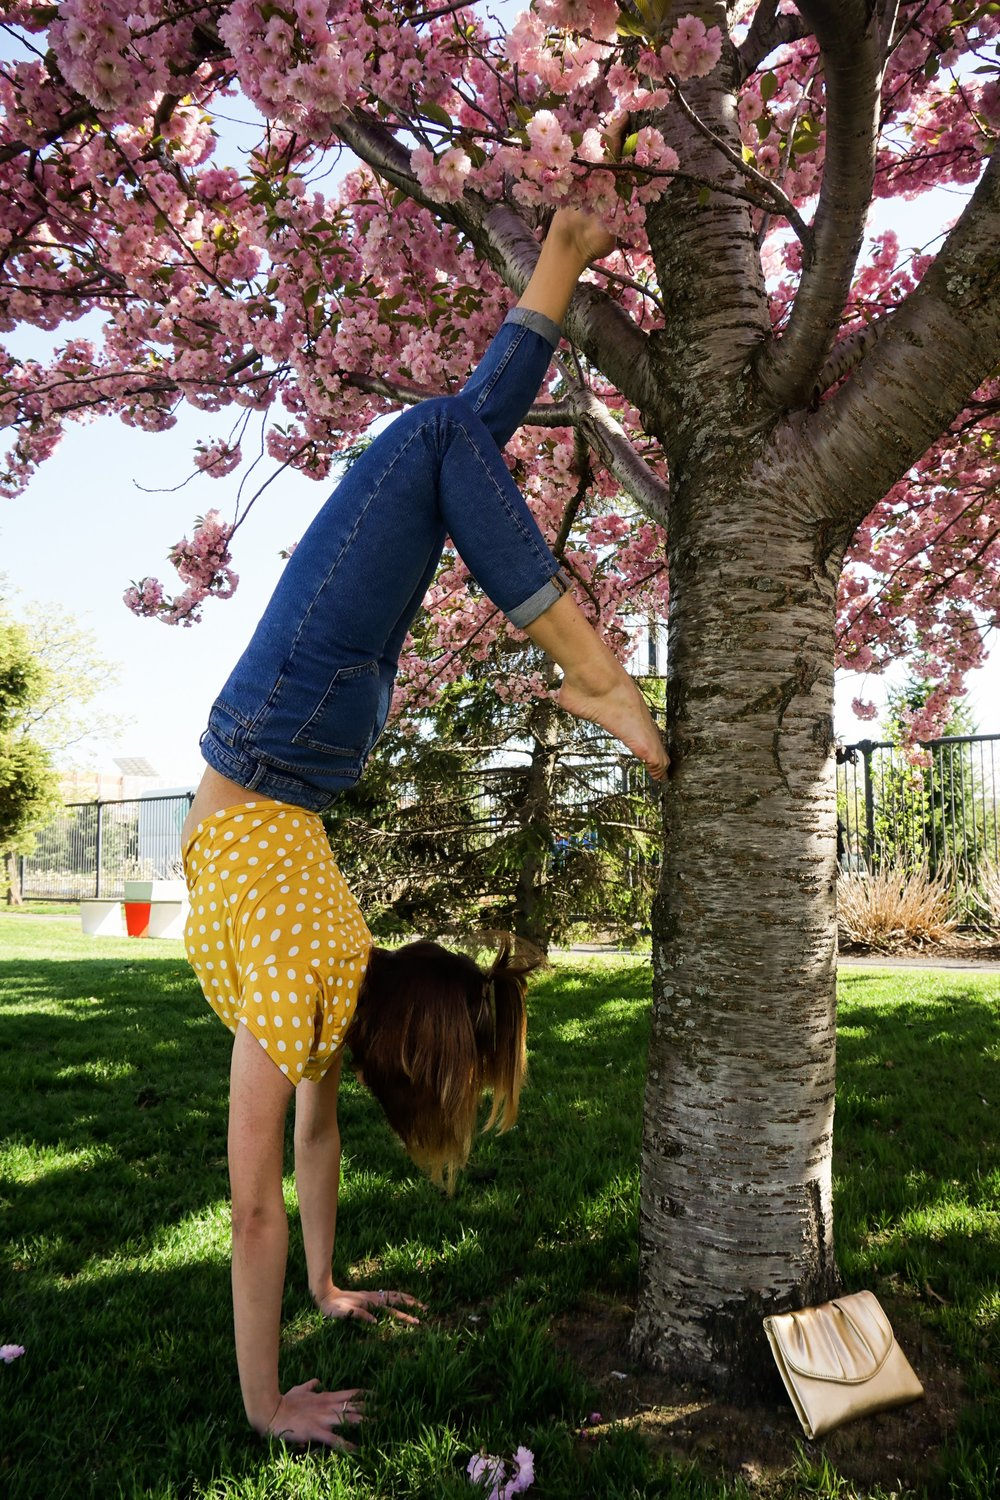 A girl doing a headstand near a tree.